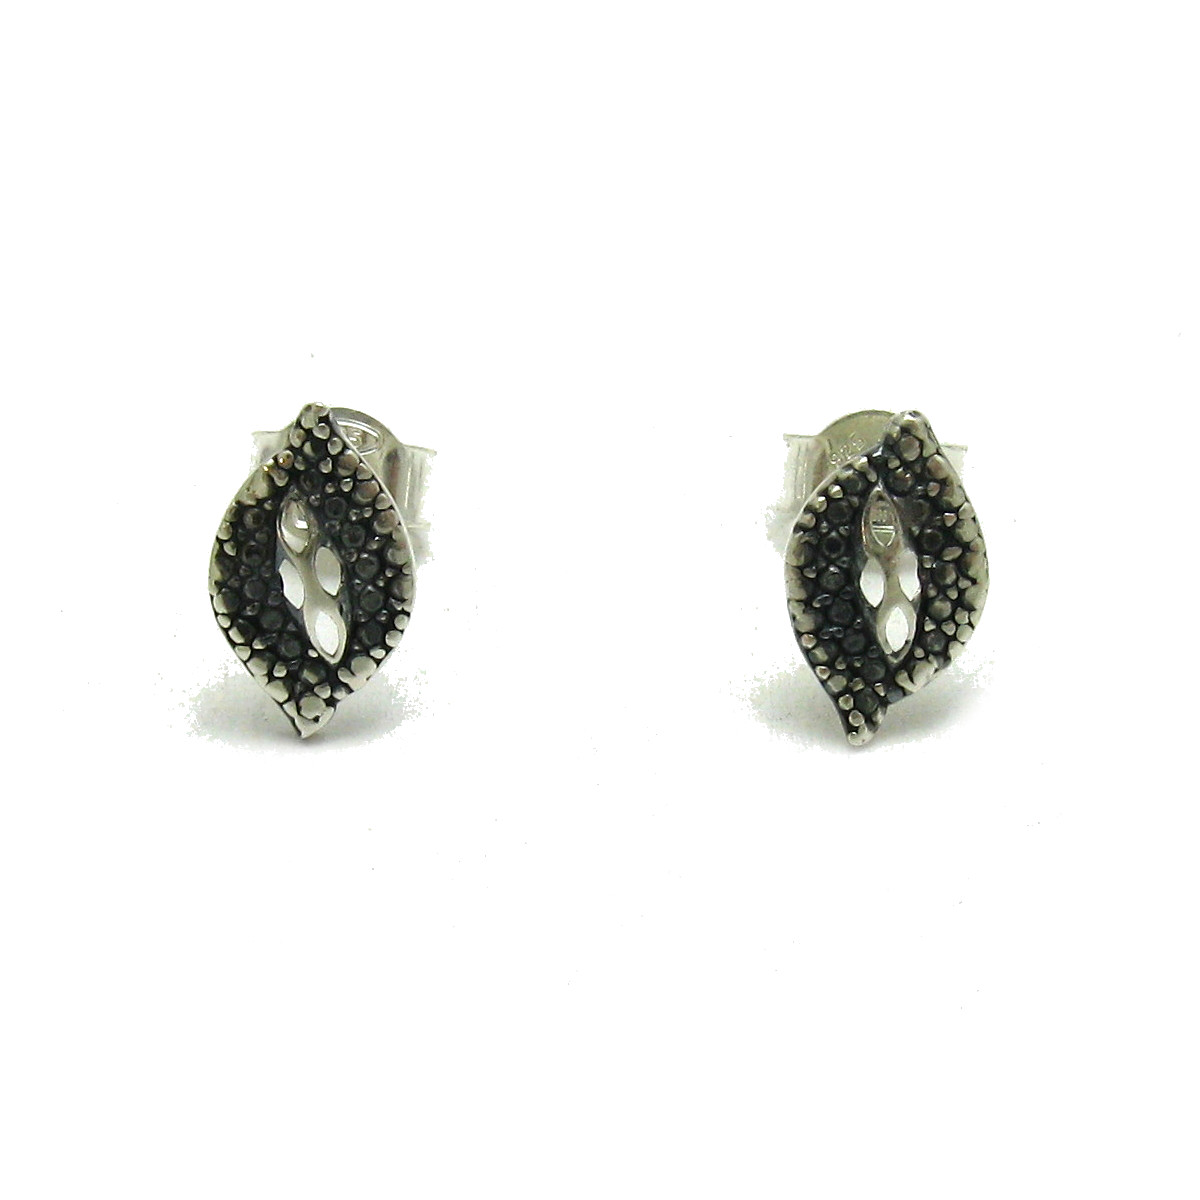 Silver earrings - E000626